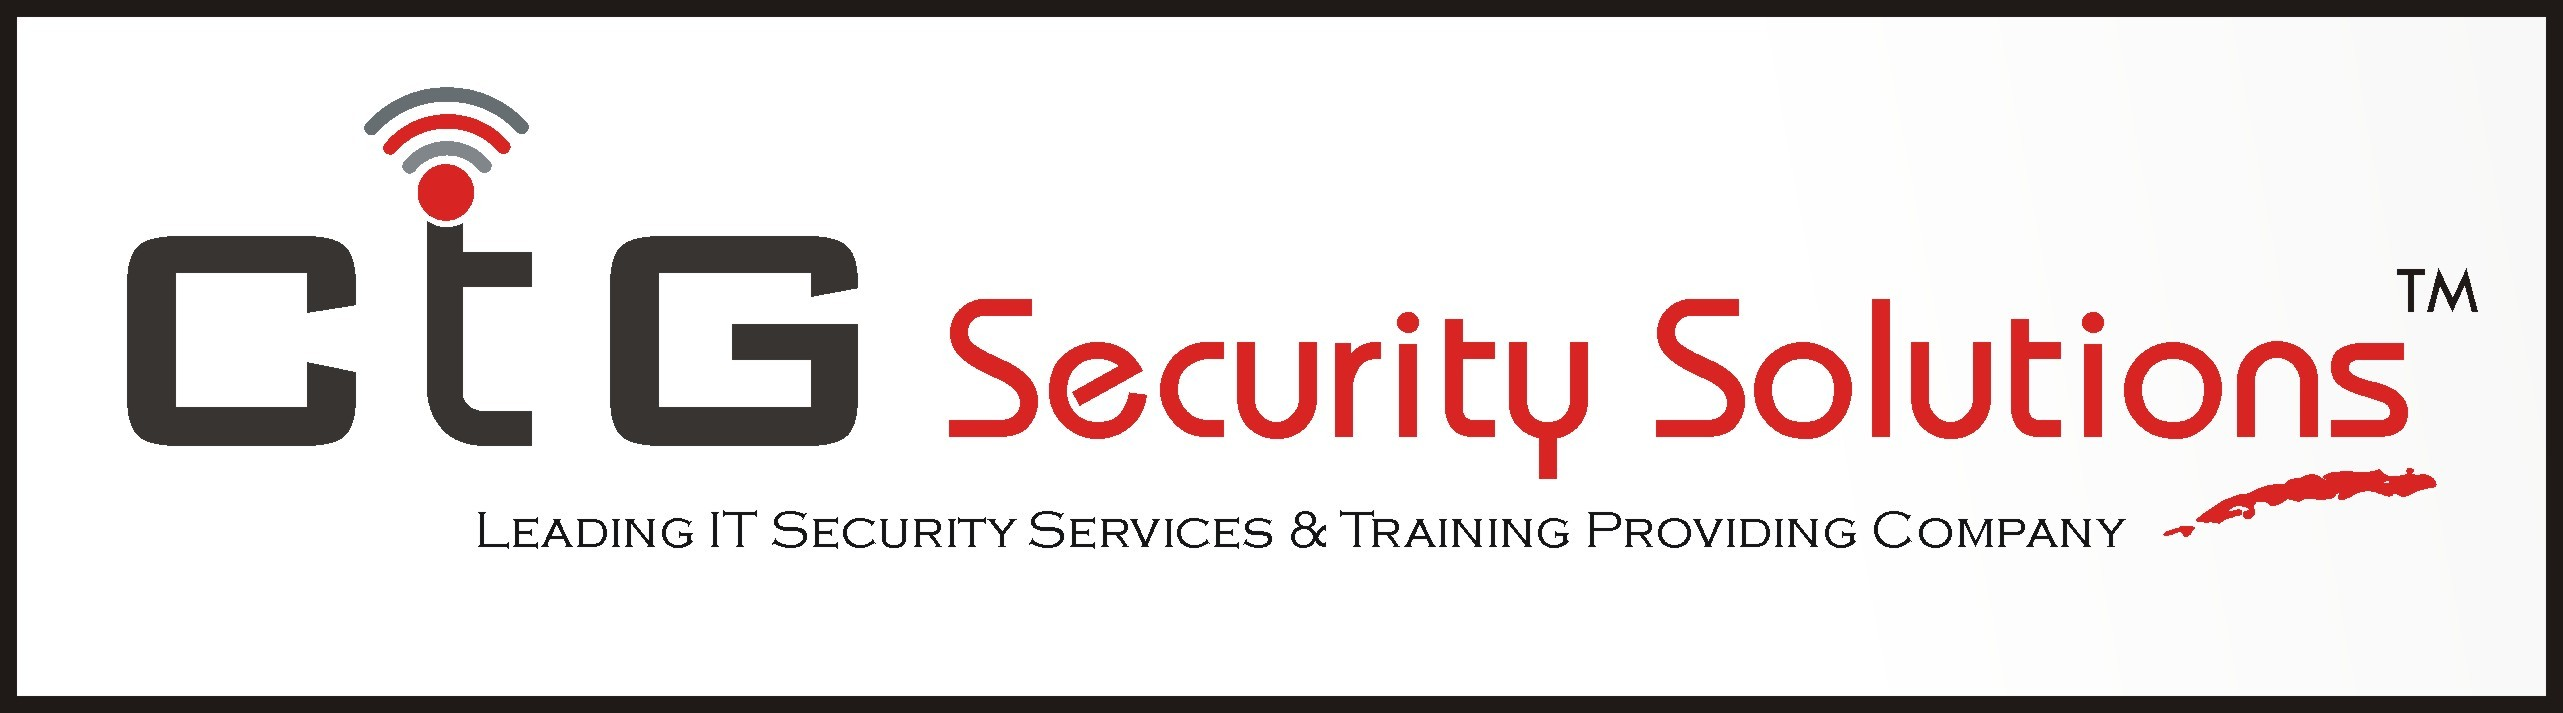 CTG Security Solutions™ | LinkedIn